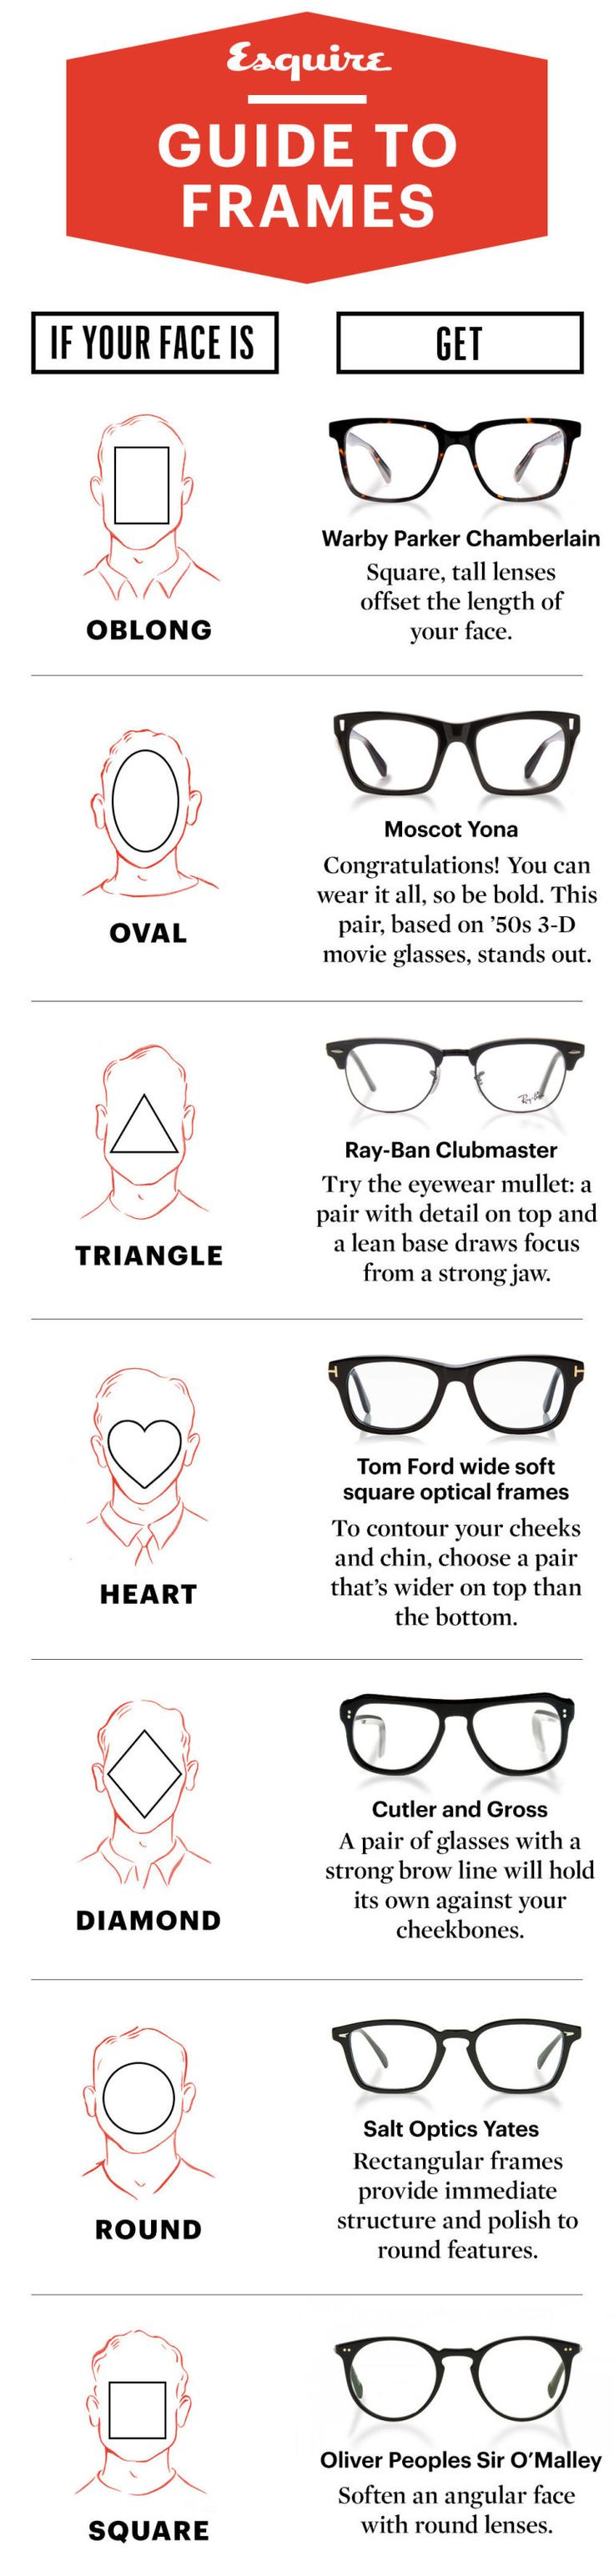 Follow these few simple guidelines for identifying the general shape of your face and the types of frames that are likely to work, so you can narrow down the pool in some simple steps. The perfect, perfect pair for you might still be that mythical unicorn out there, but at least this way, you can get a jump start on the hunt.